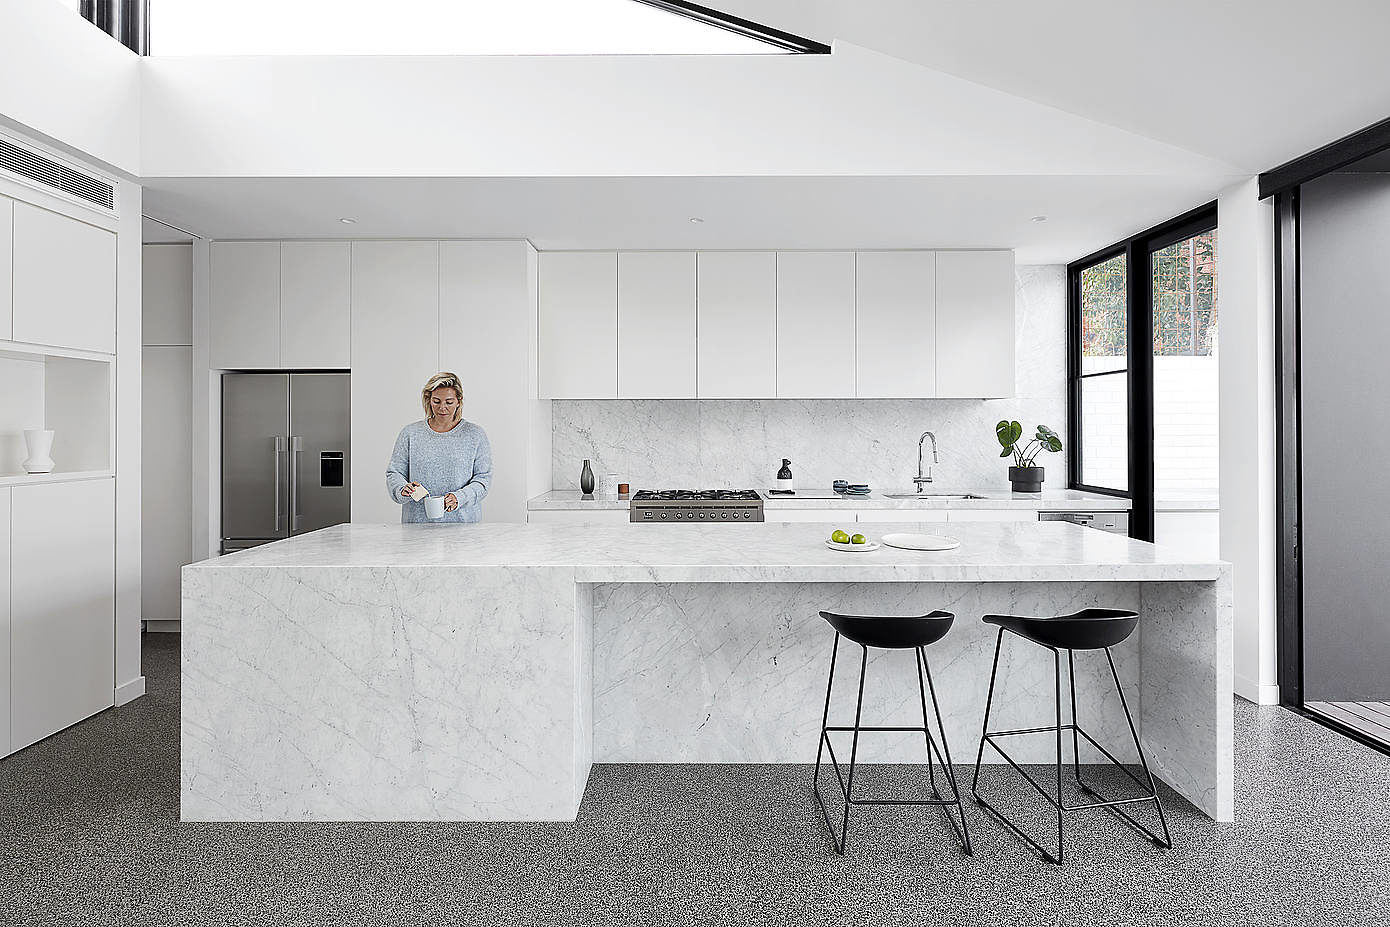 House in Melbourne by Tom Robertson Architects